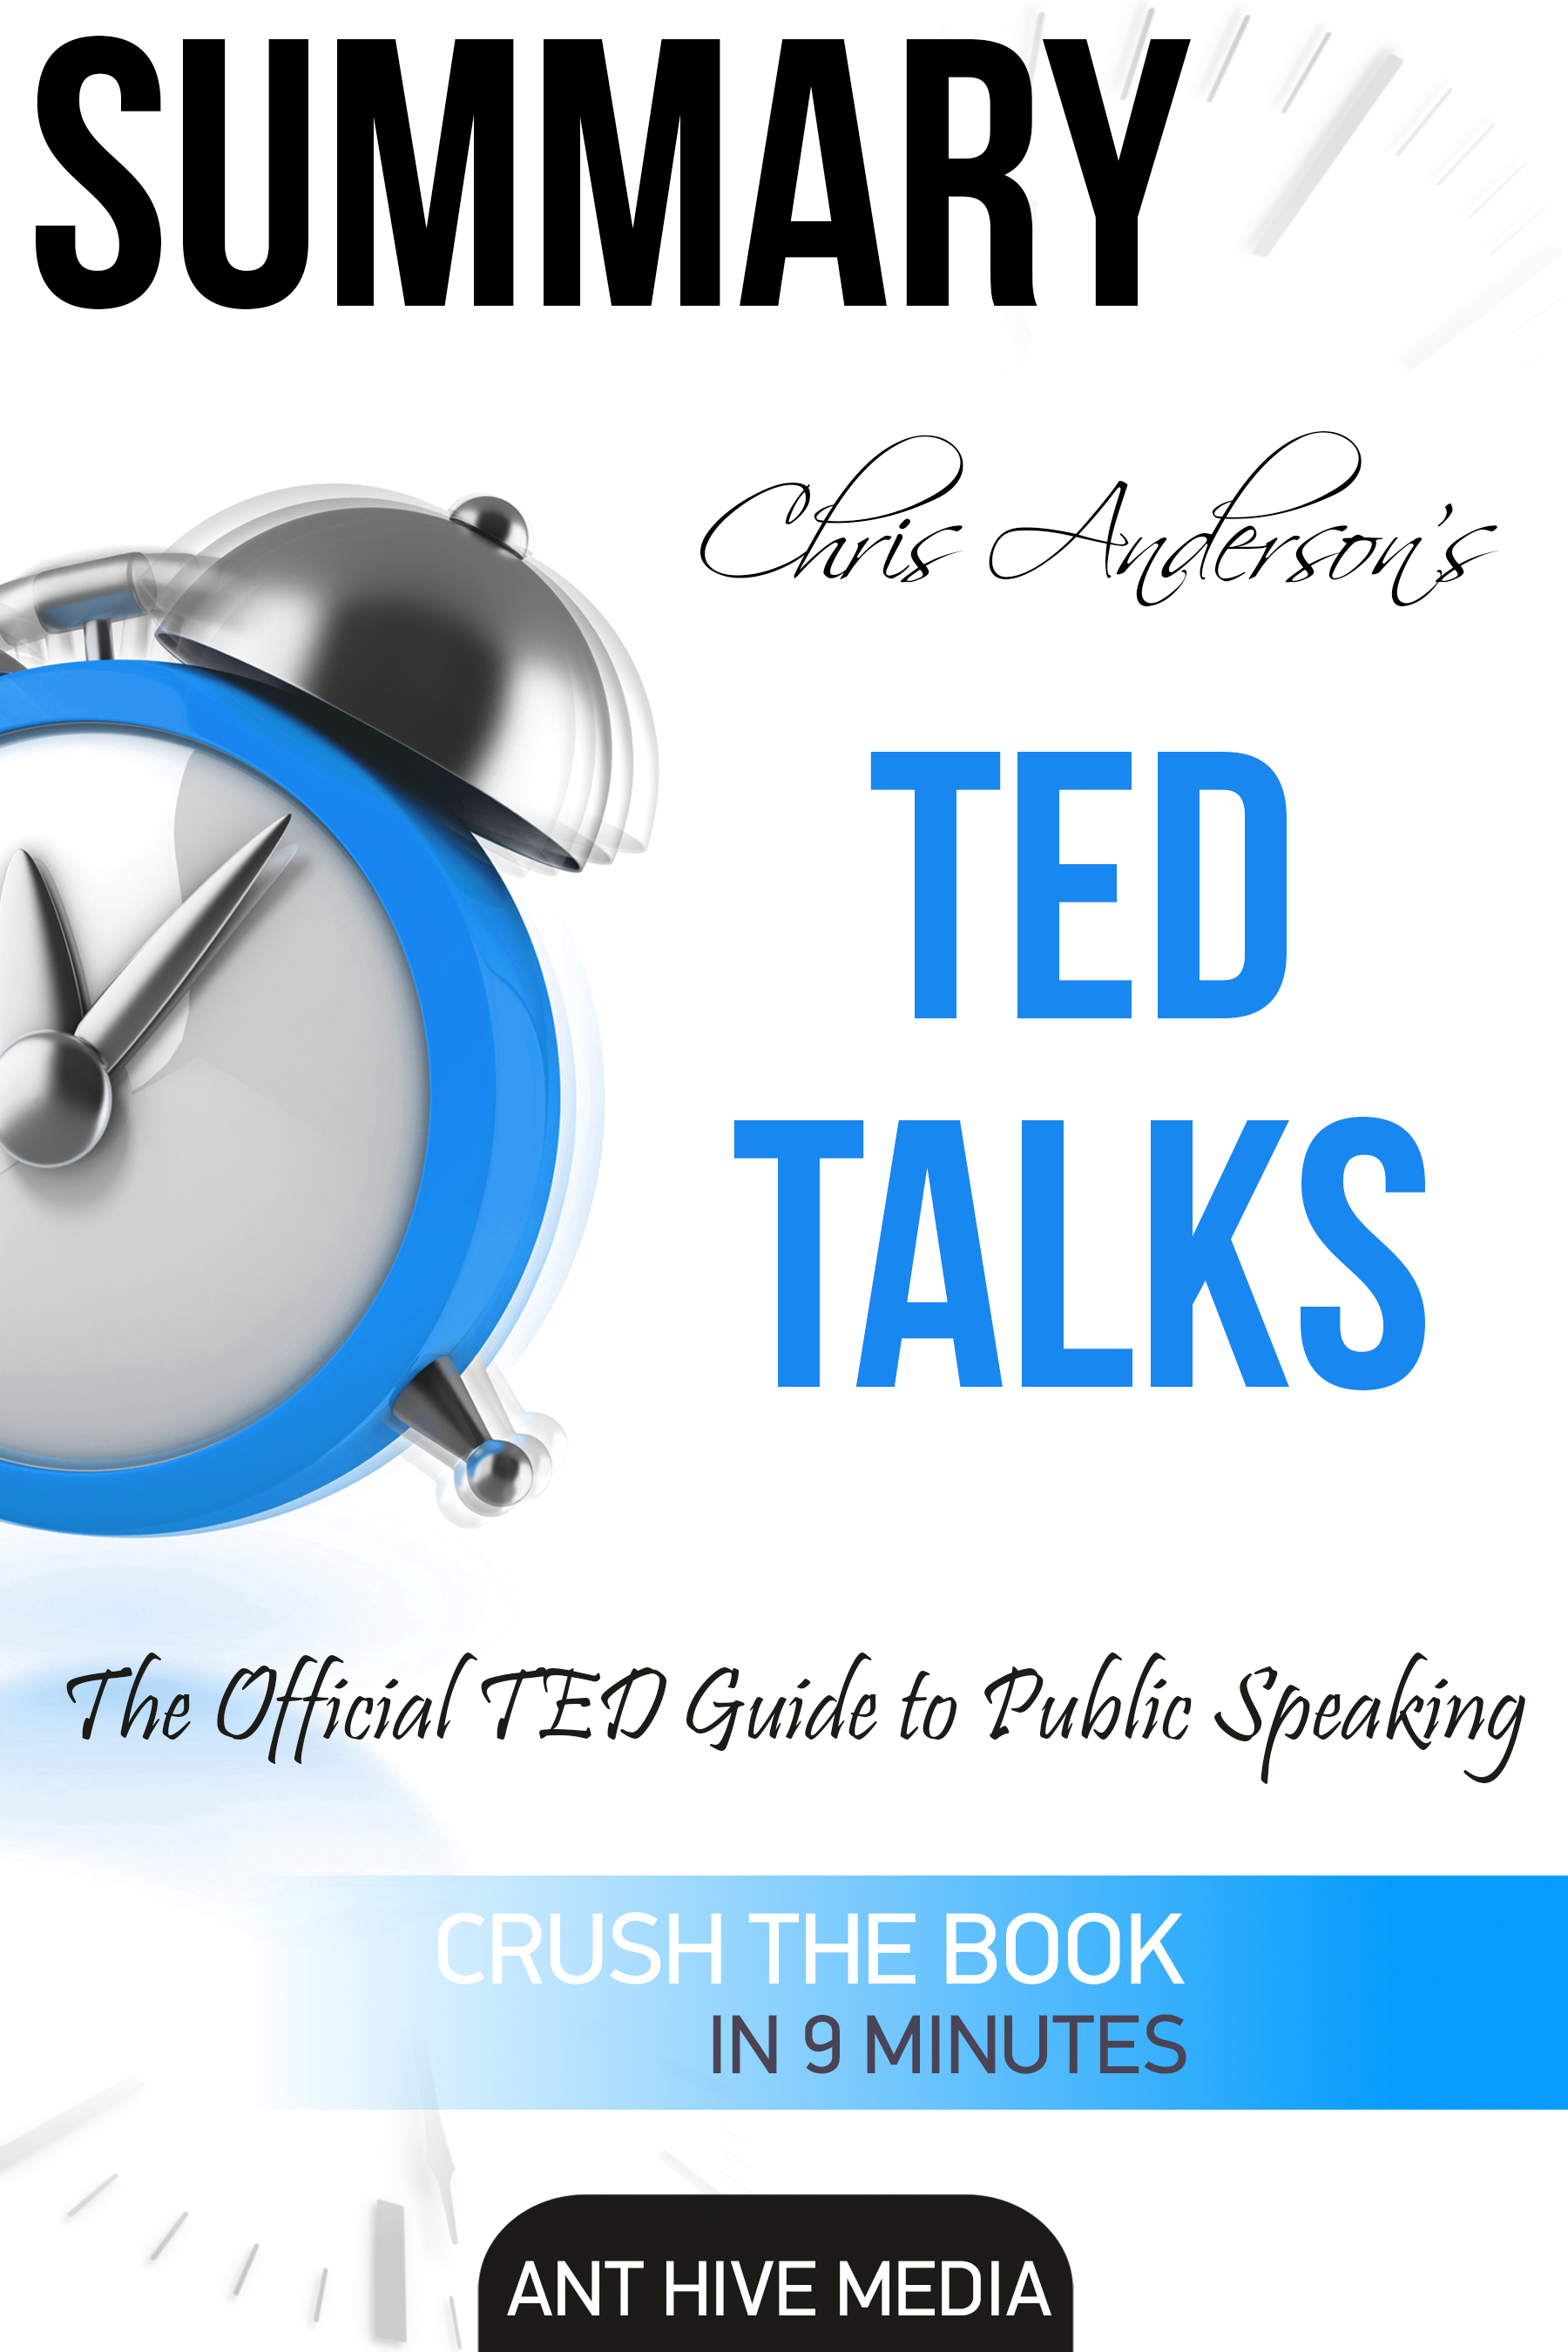 Chris Anderson's TED Talks: The Official TED Guide to Public Speaking | Summary